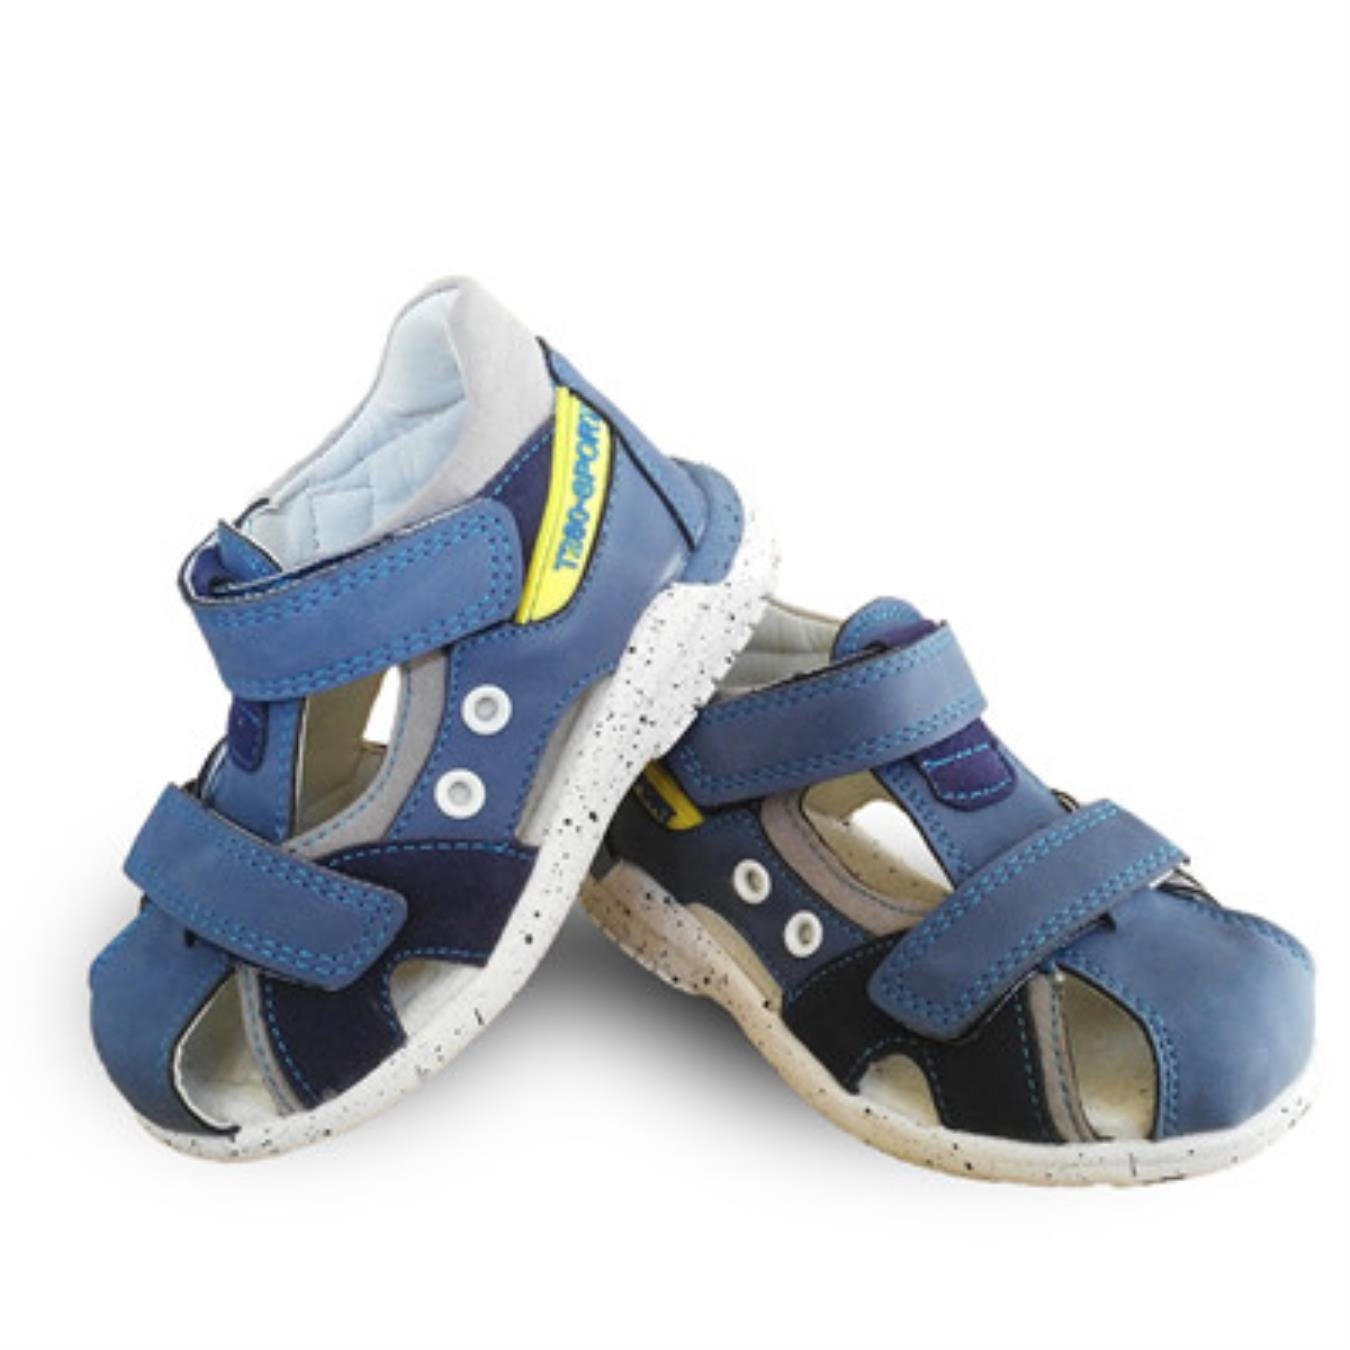 super quality 1 pair Orthopedic PU Leather Boy Sandals Children Shoes, child sandals by PEWTOU